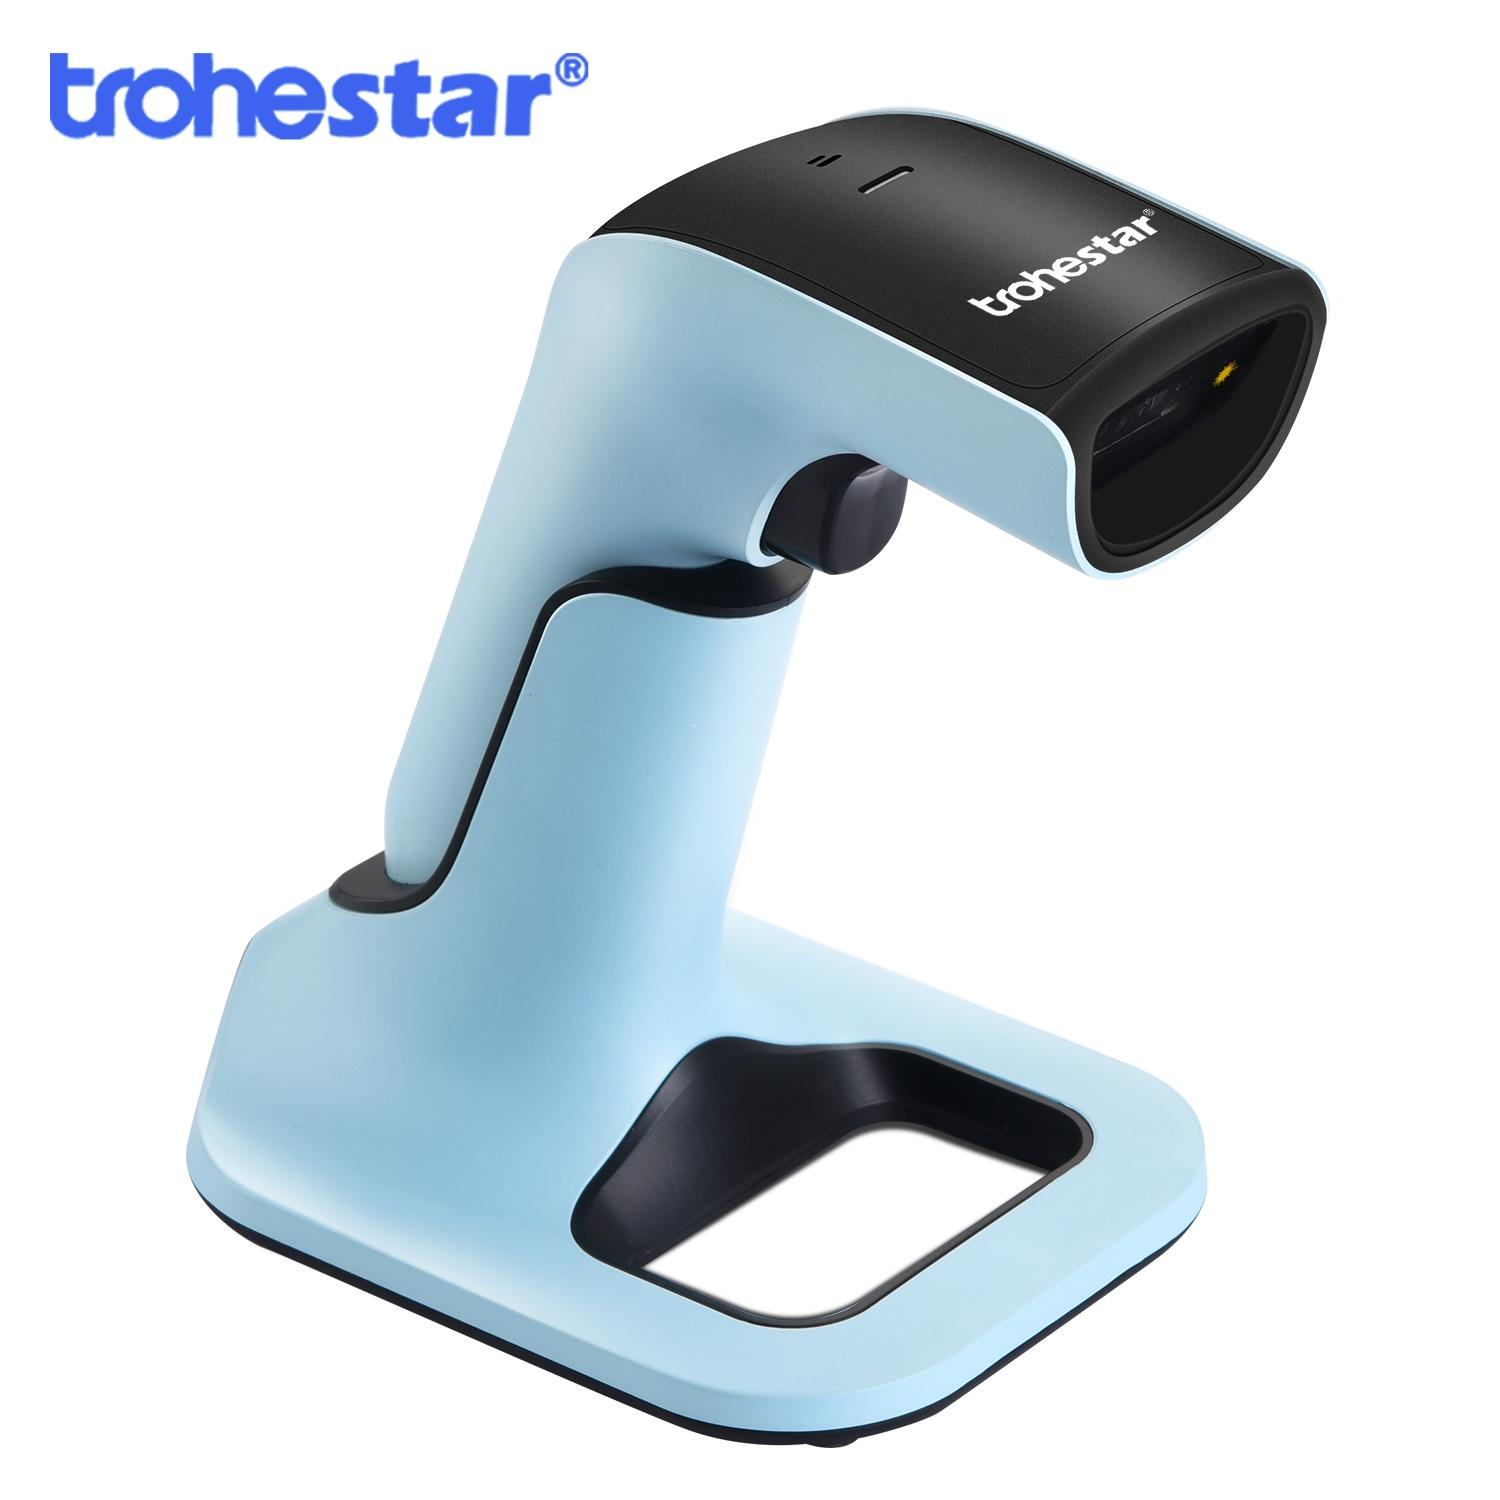 Wireless Barcode Scanner Portable 2 4GHz 1D 2D QR Barcode Inventory Bar Code Reader with Charging Cradle Scanners